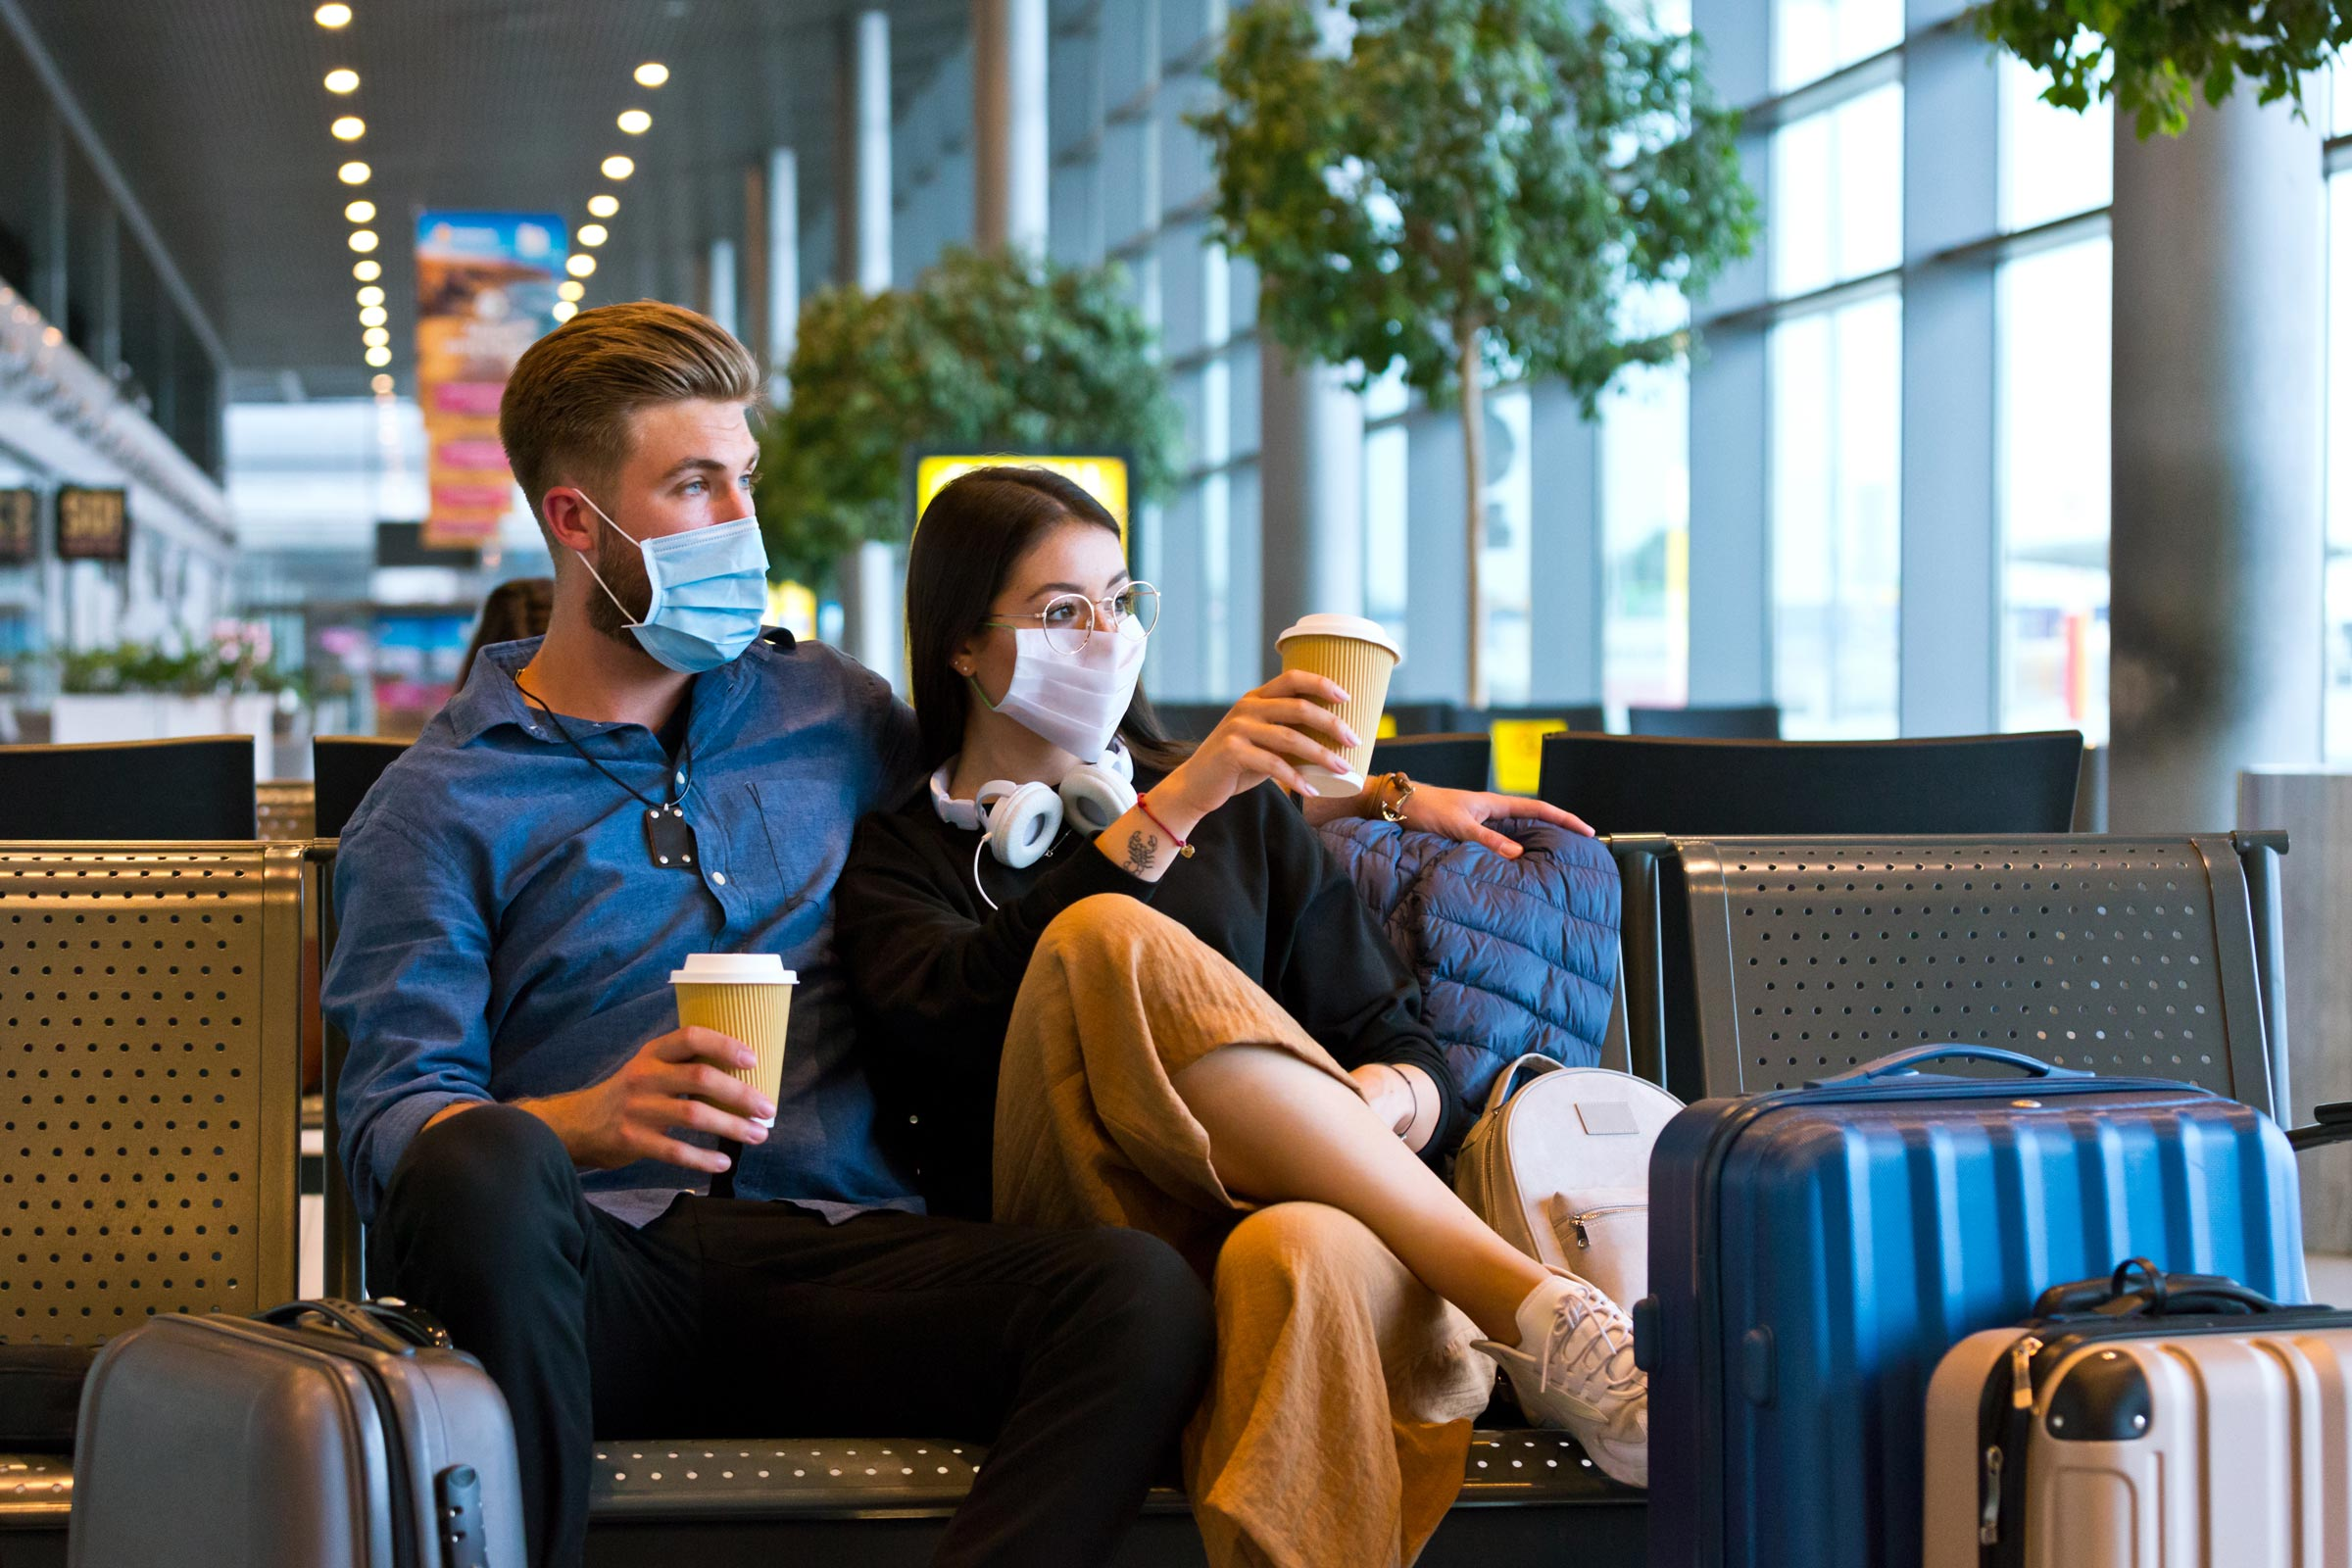 a young couple holding coffee cups sit together in the airport while wearing N95 masks